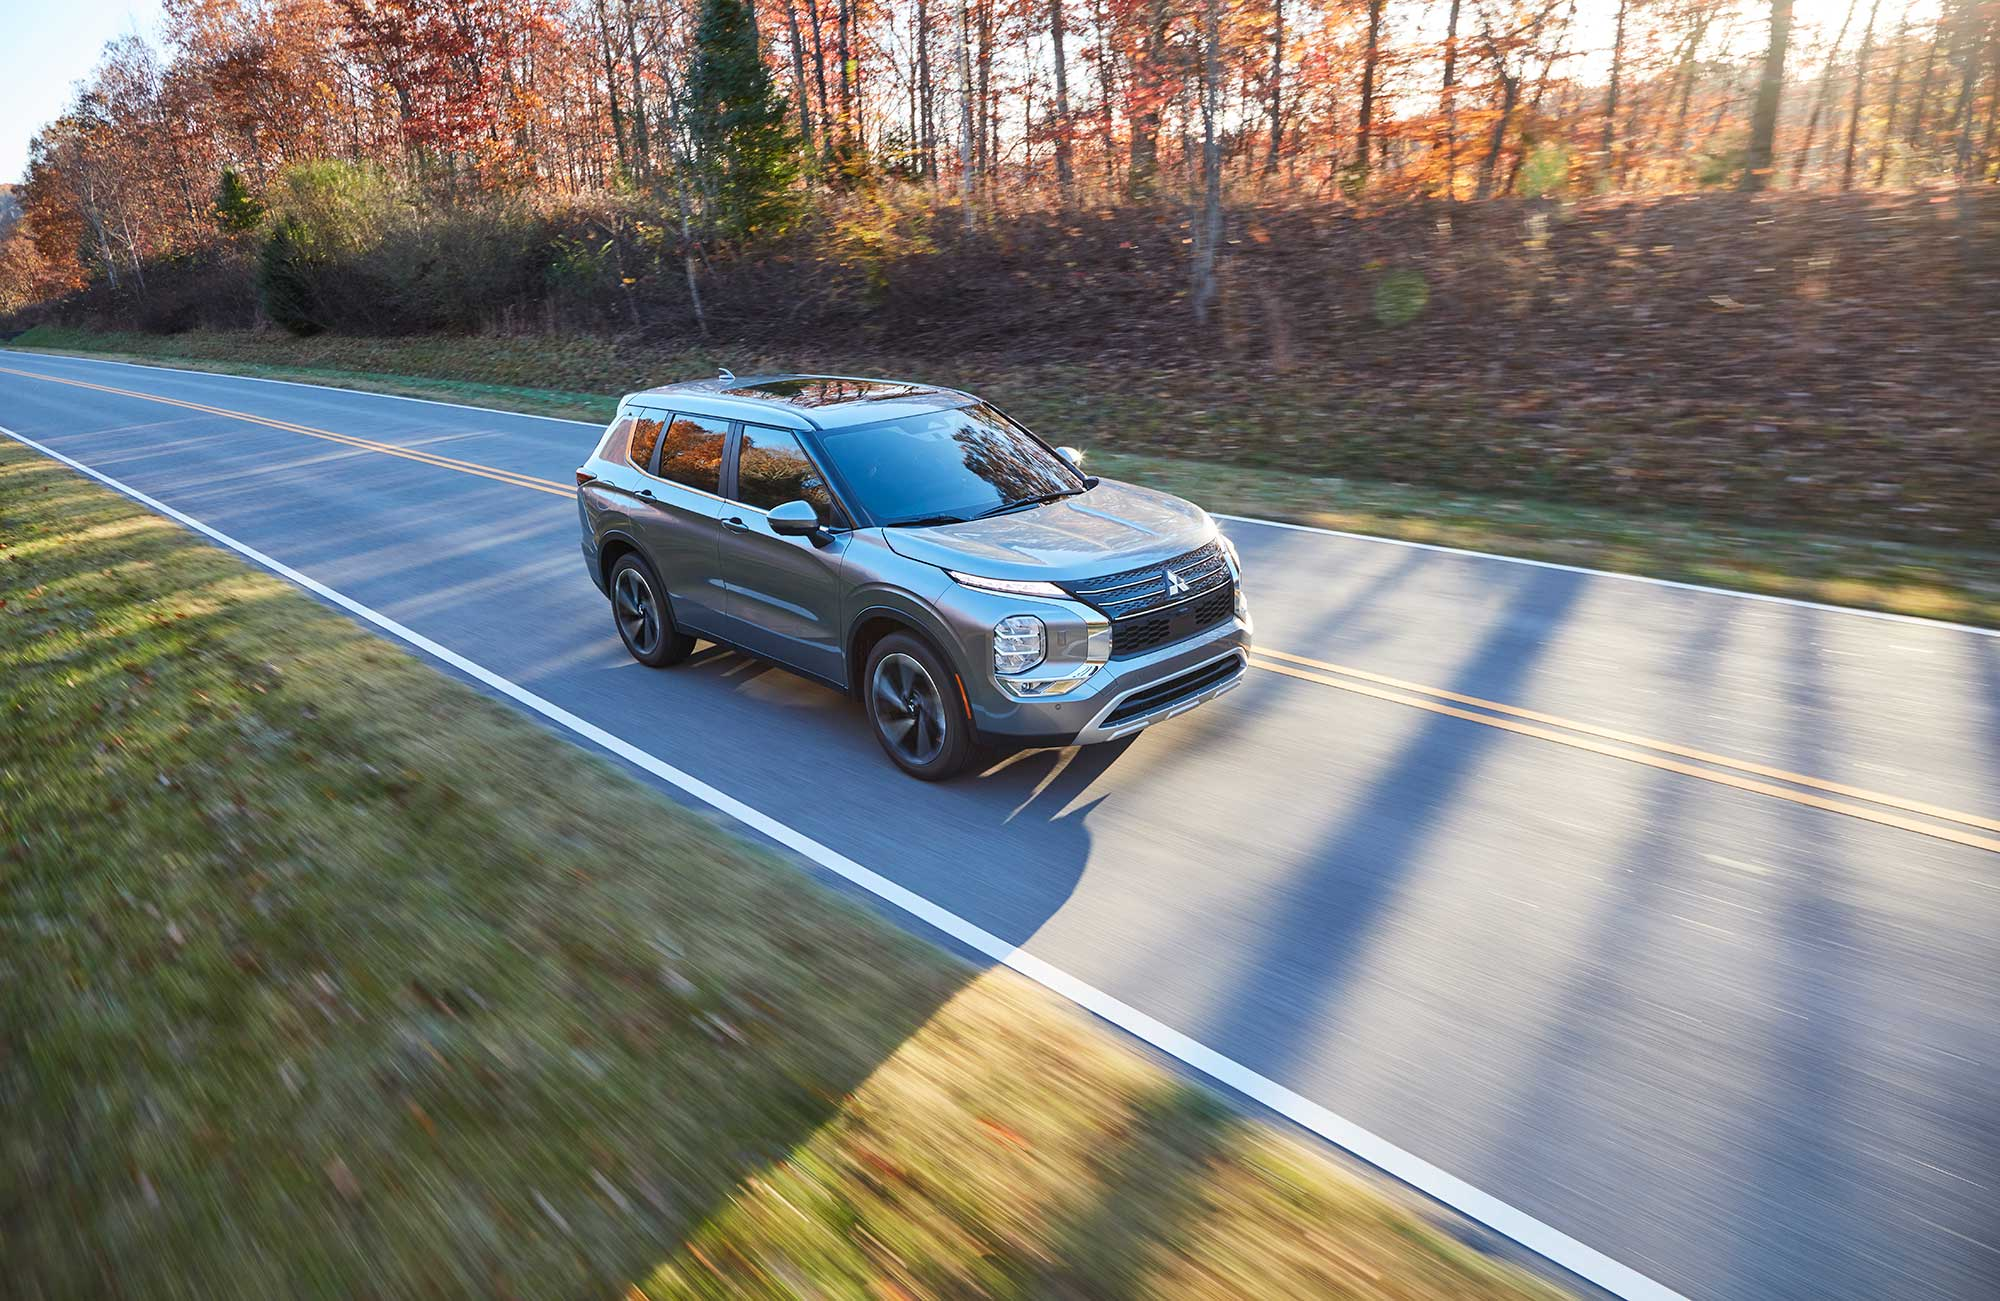 The 2022 Mitsubishi Outlander driving on a road.